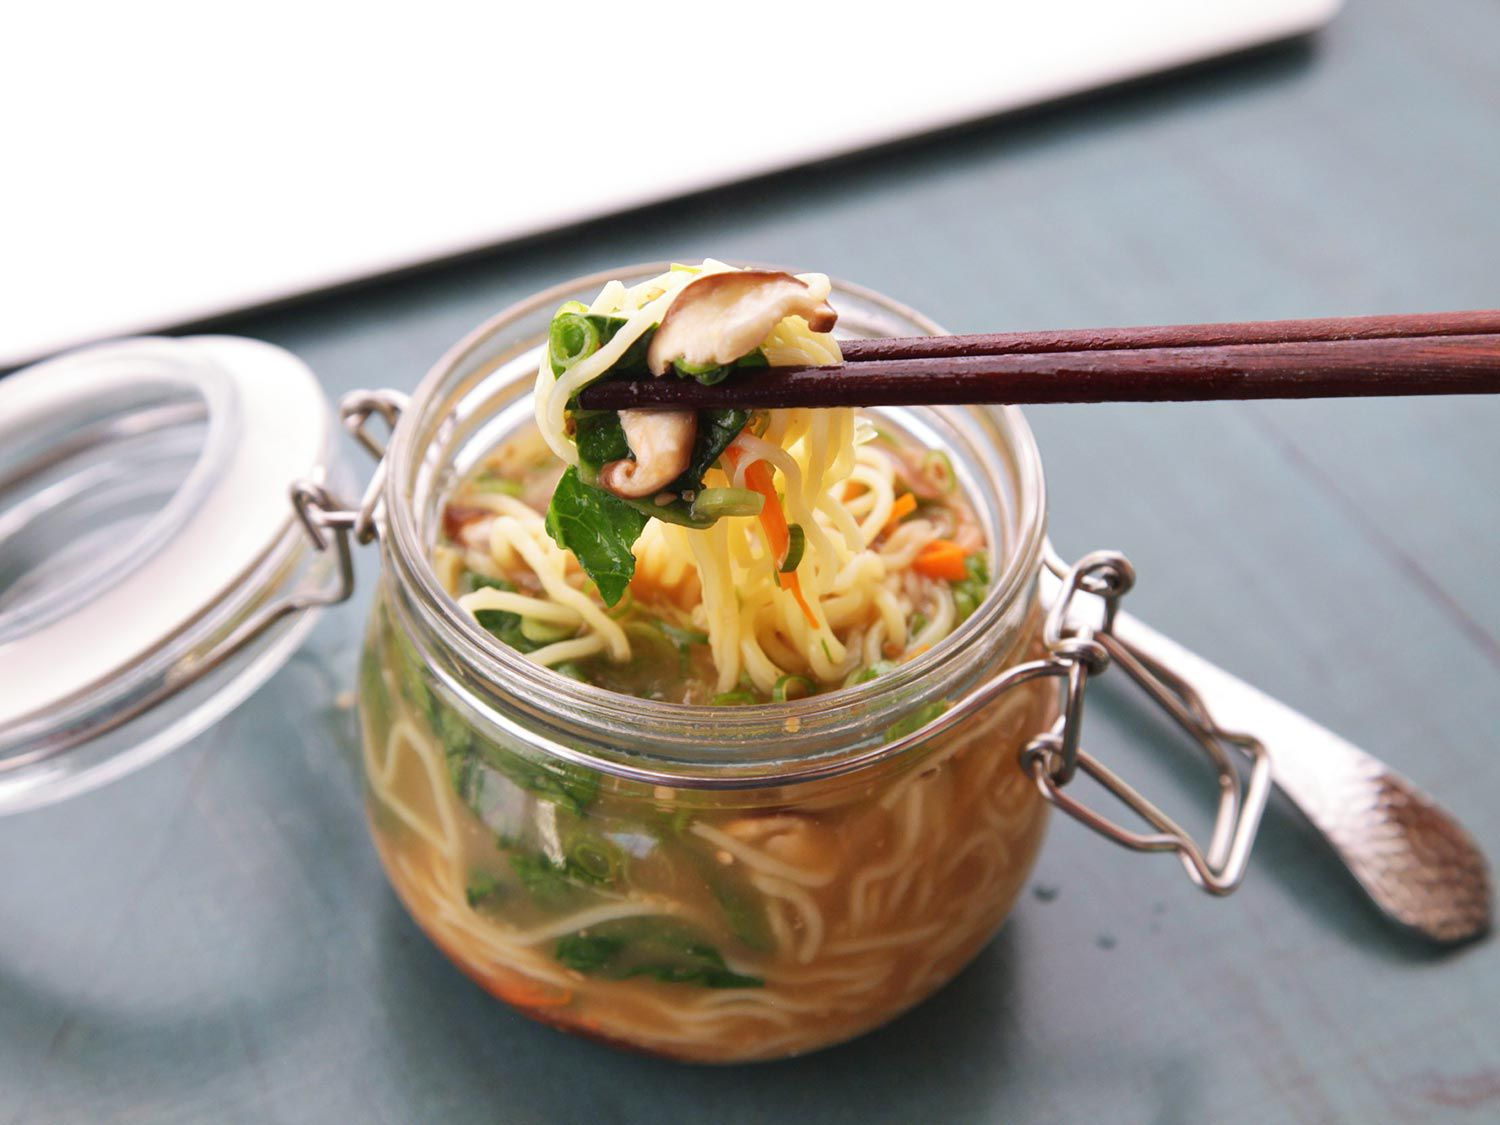 DIY Just-Add-Hot-Water Instant Noodles